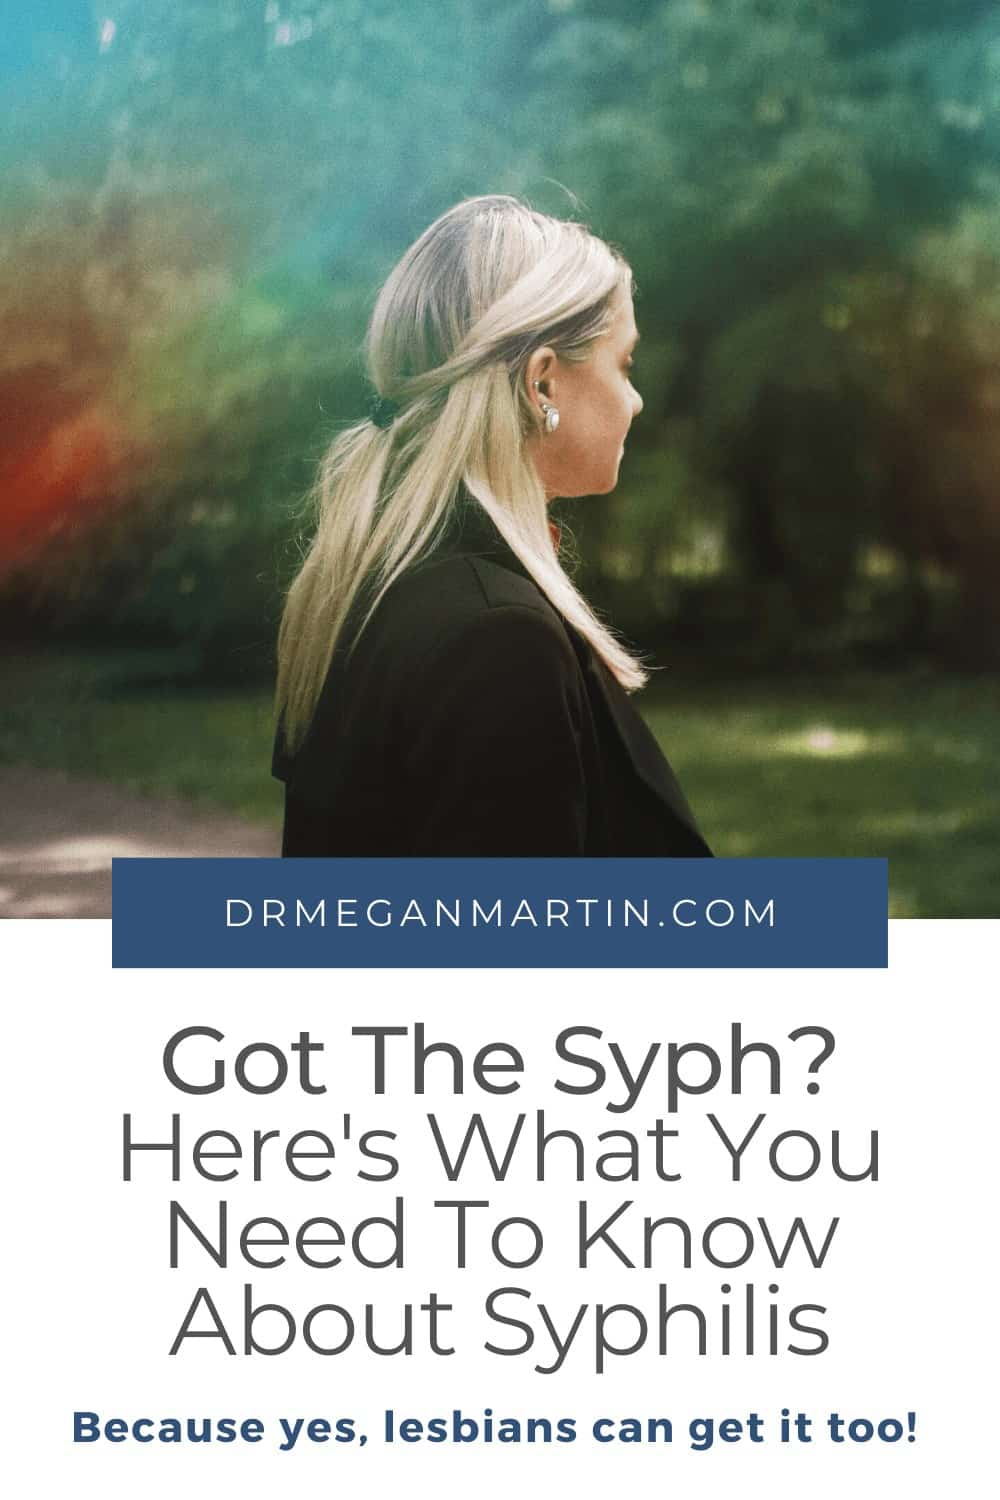 Here's what you need to know about syphilis